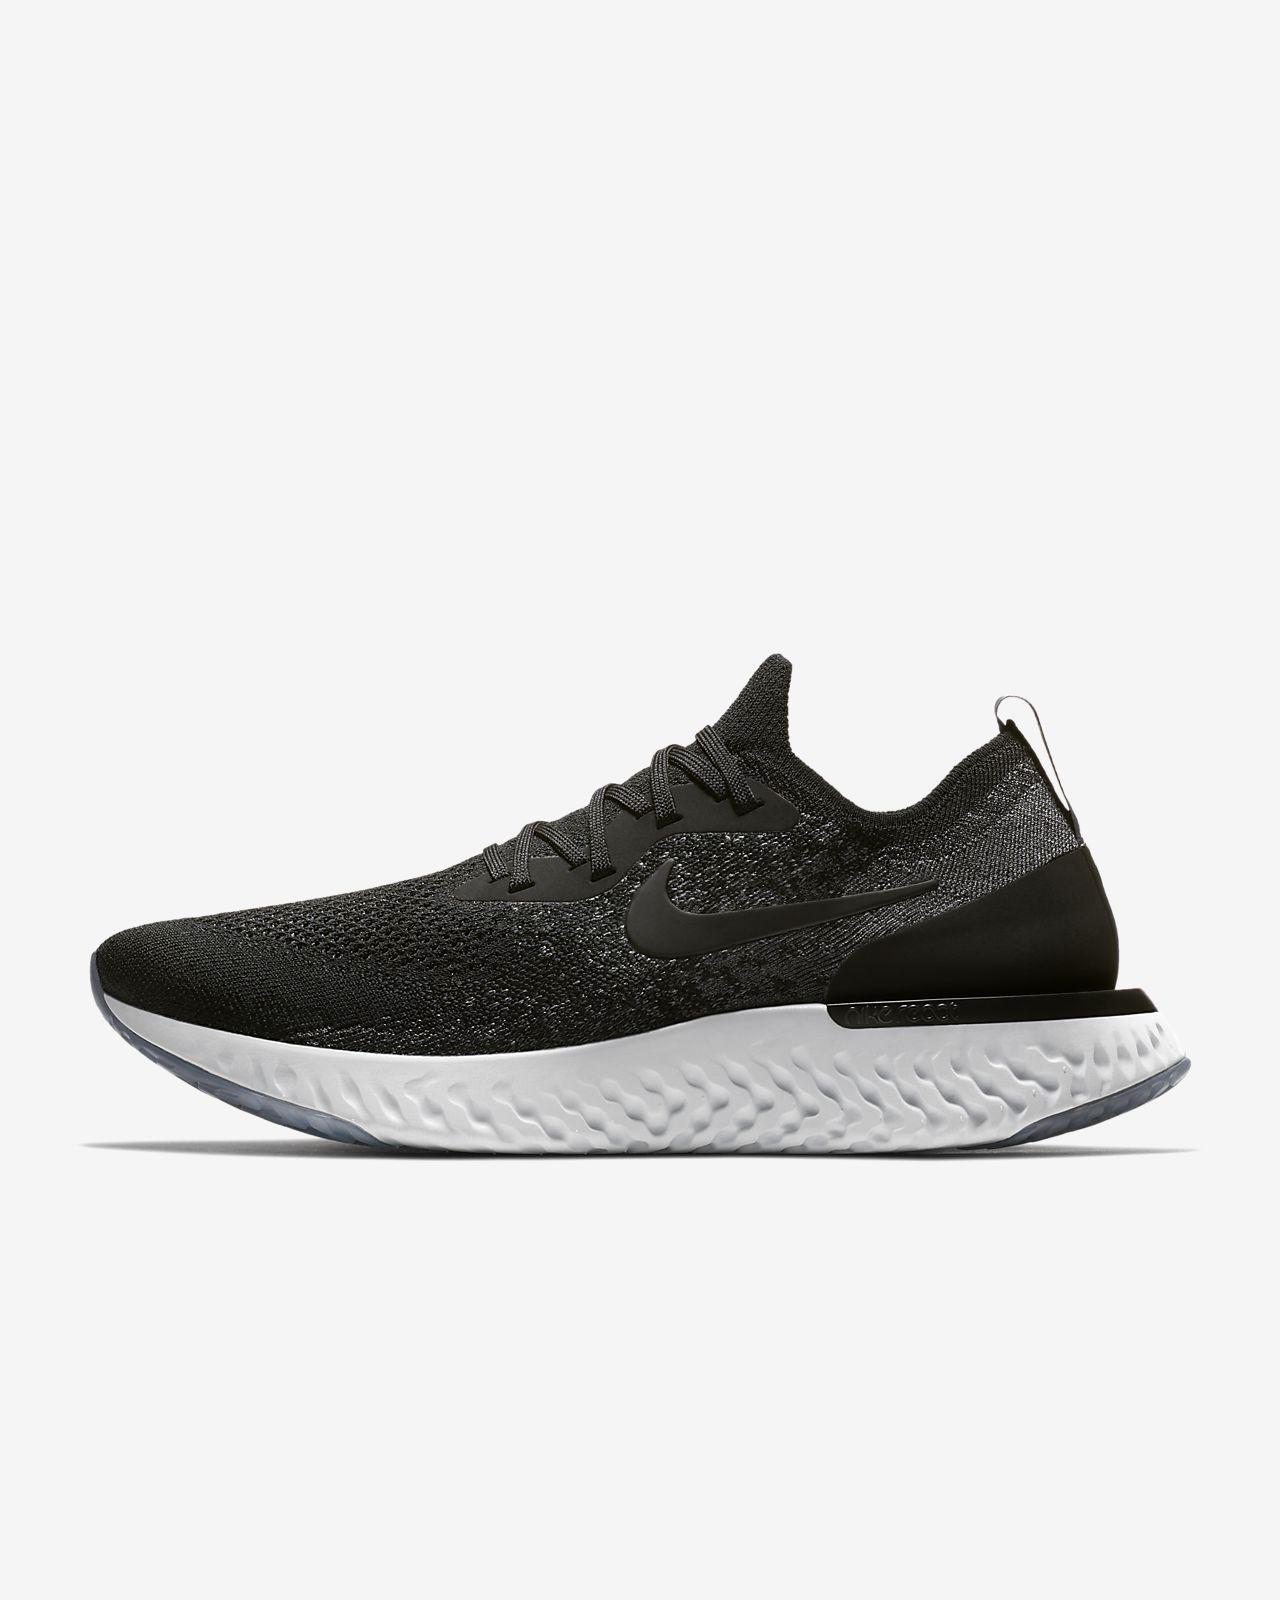 Chaussure de running Nike Epic React Flyknit pour Homme